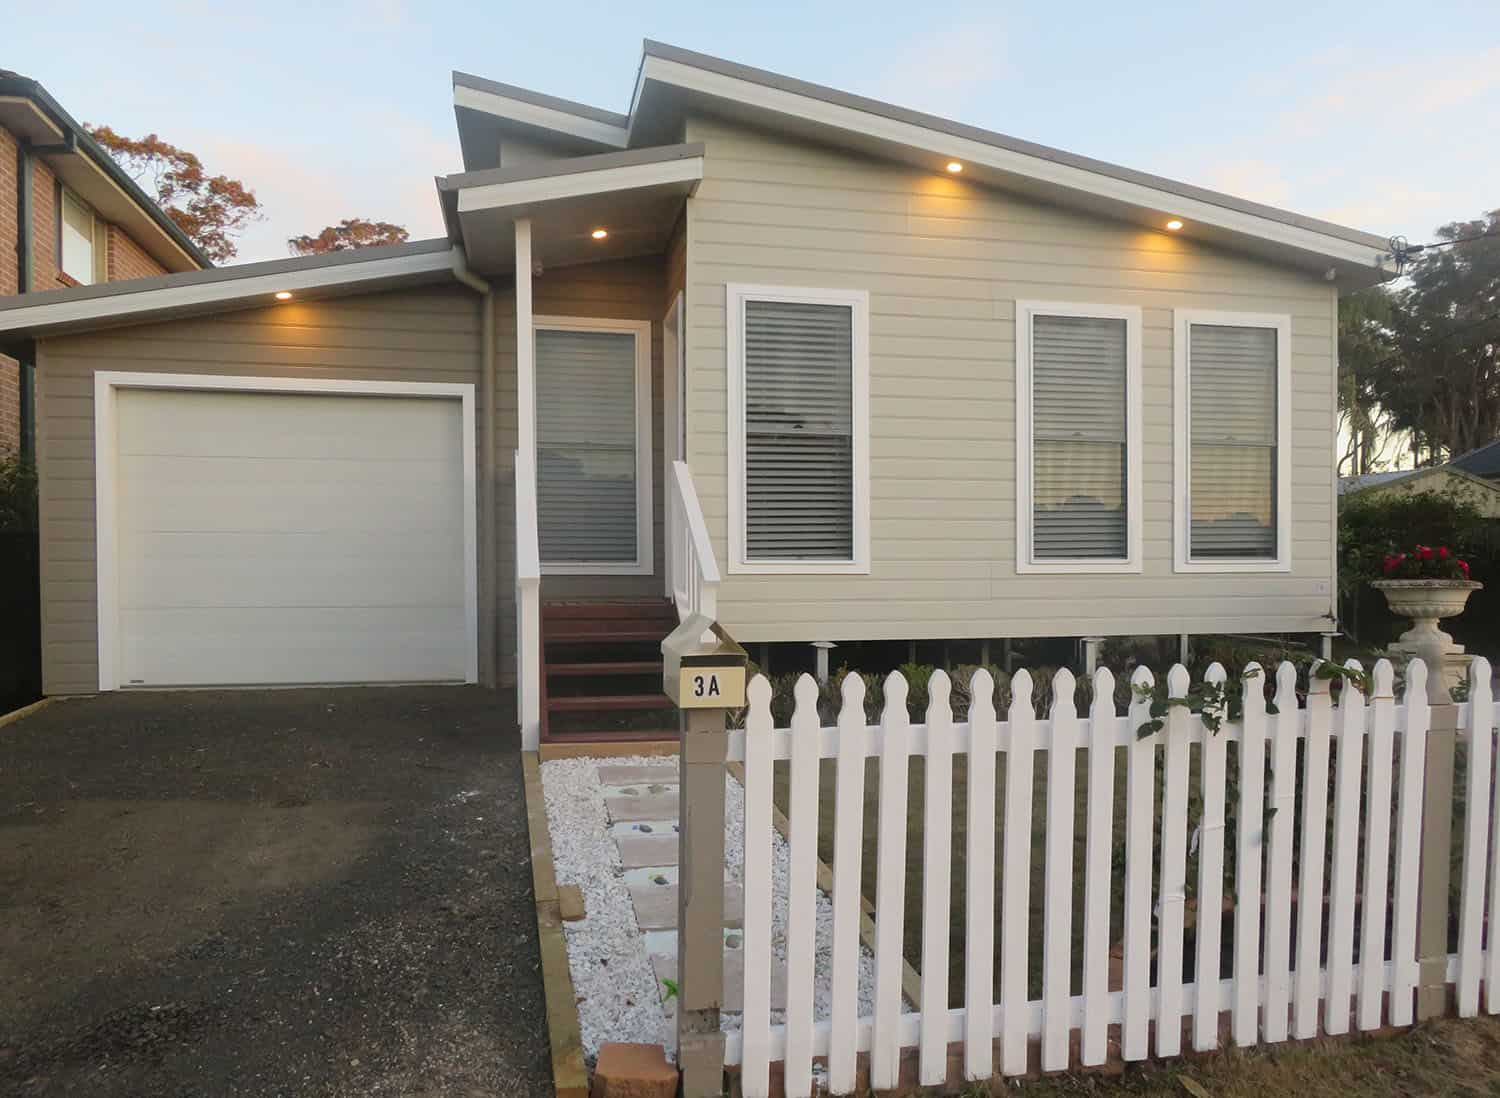 2 bedroom granny flat in Tuggerawong